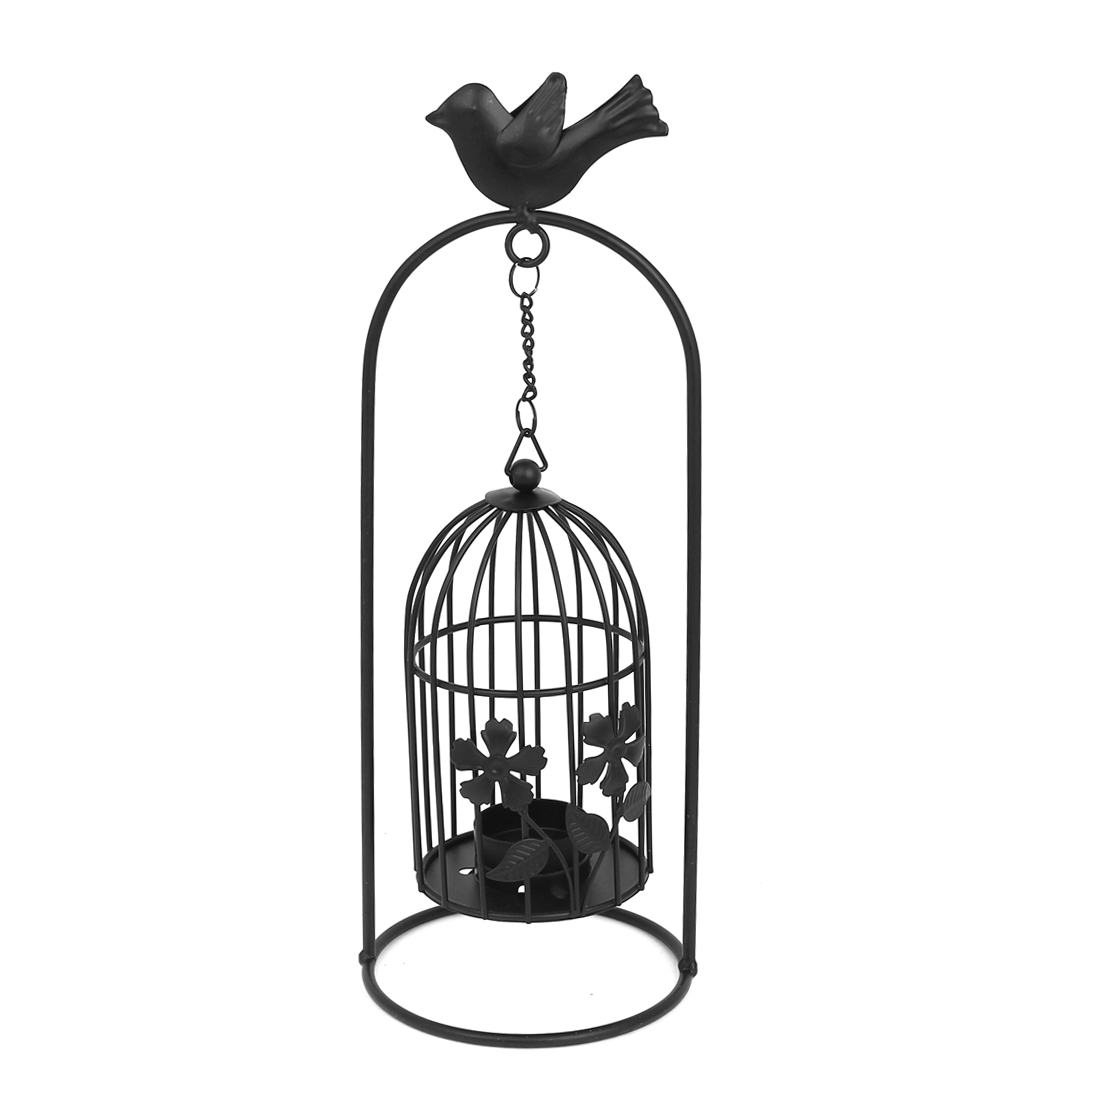 Iron Retro Style Bird Cage Tea Light Candle Holder Stand Hanger Black